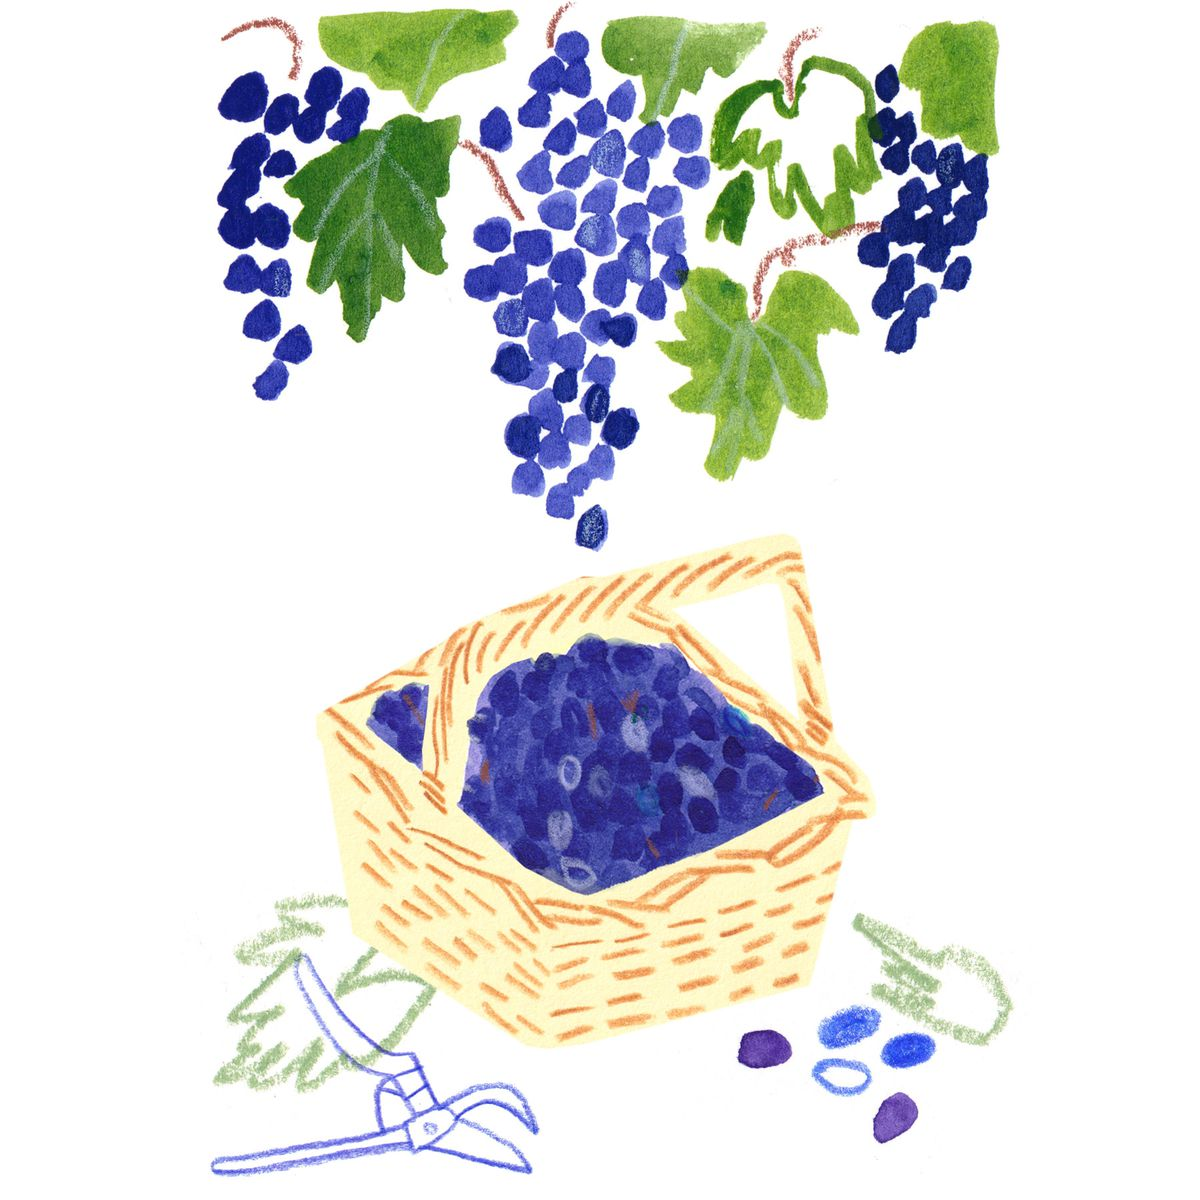 A drawing of a brown-and-white basket full of purple grapes on the ground with pruning shears underneath a vine of purple grapes and green leaves.